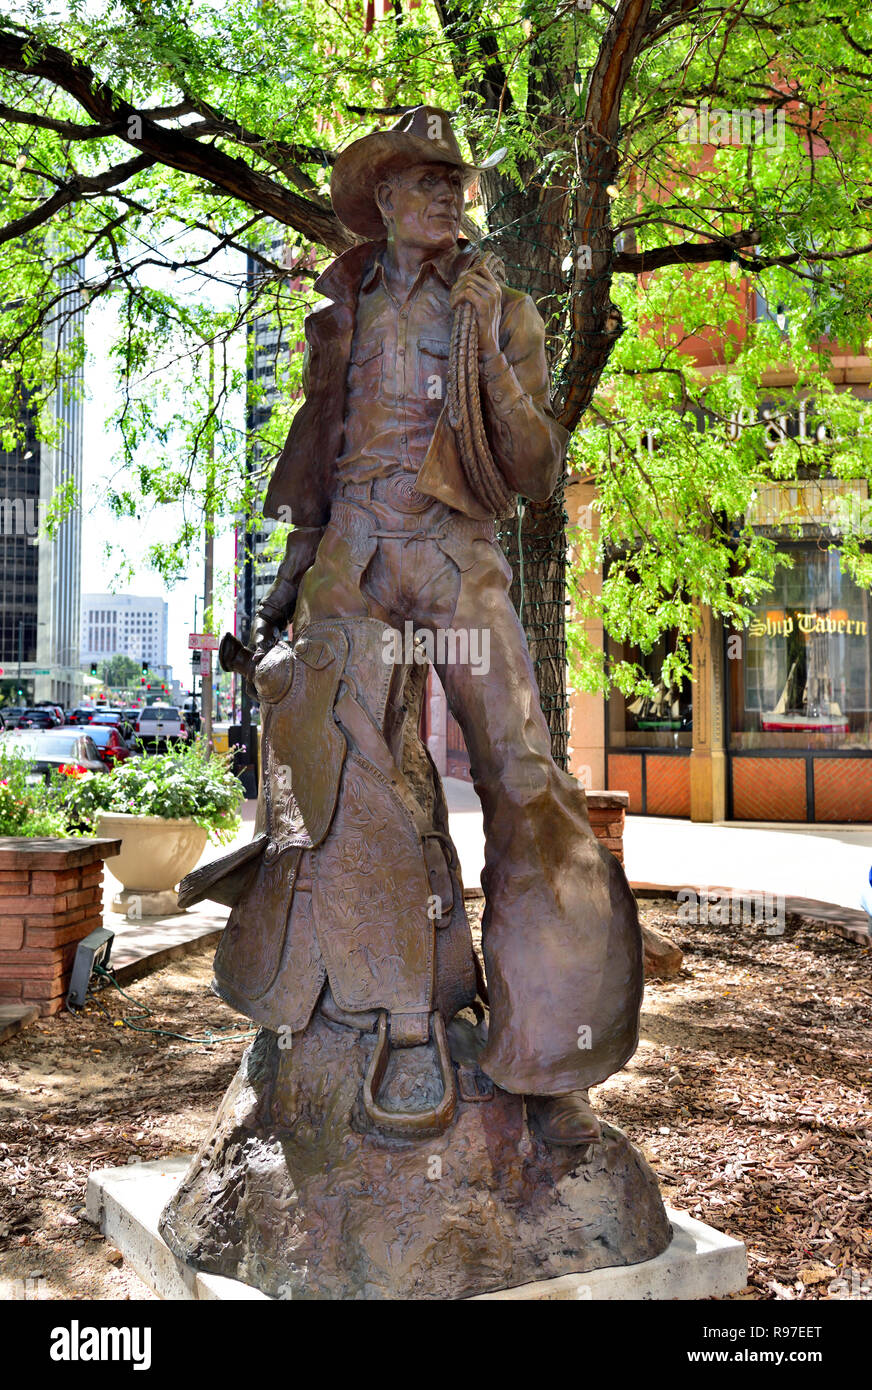 Statue of American Cowboy standing with saddle, lasso rope, chaps. National Western Stock Show, 2006, Denver Colorado - Stock Image